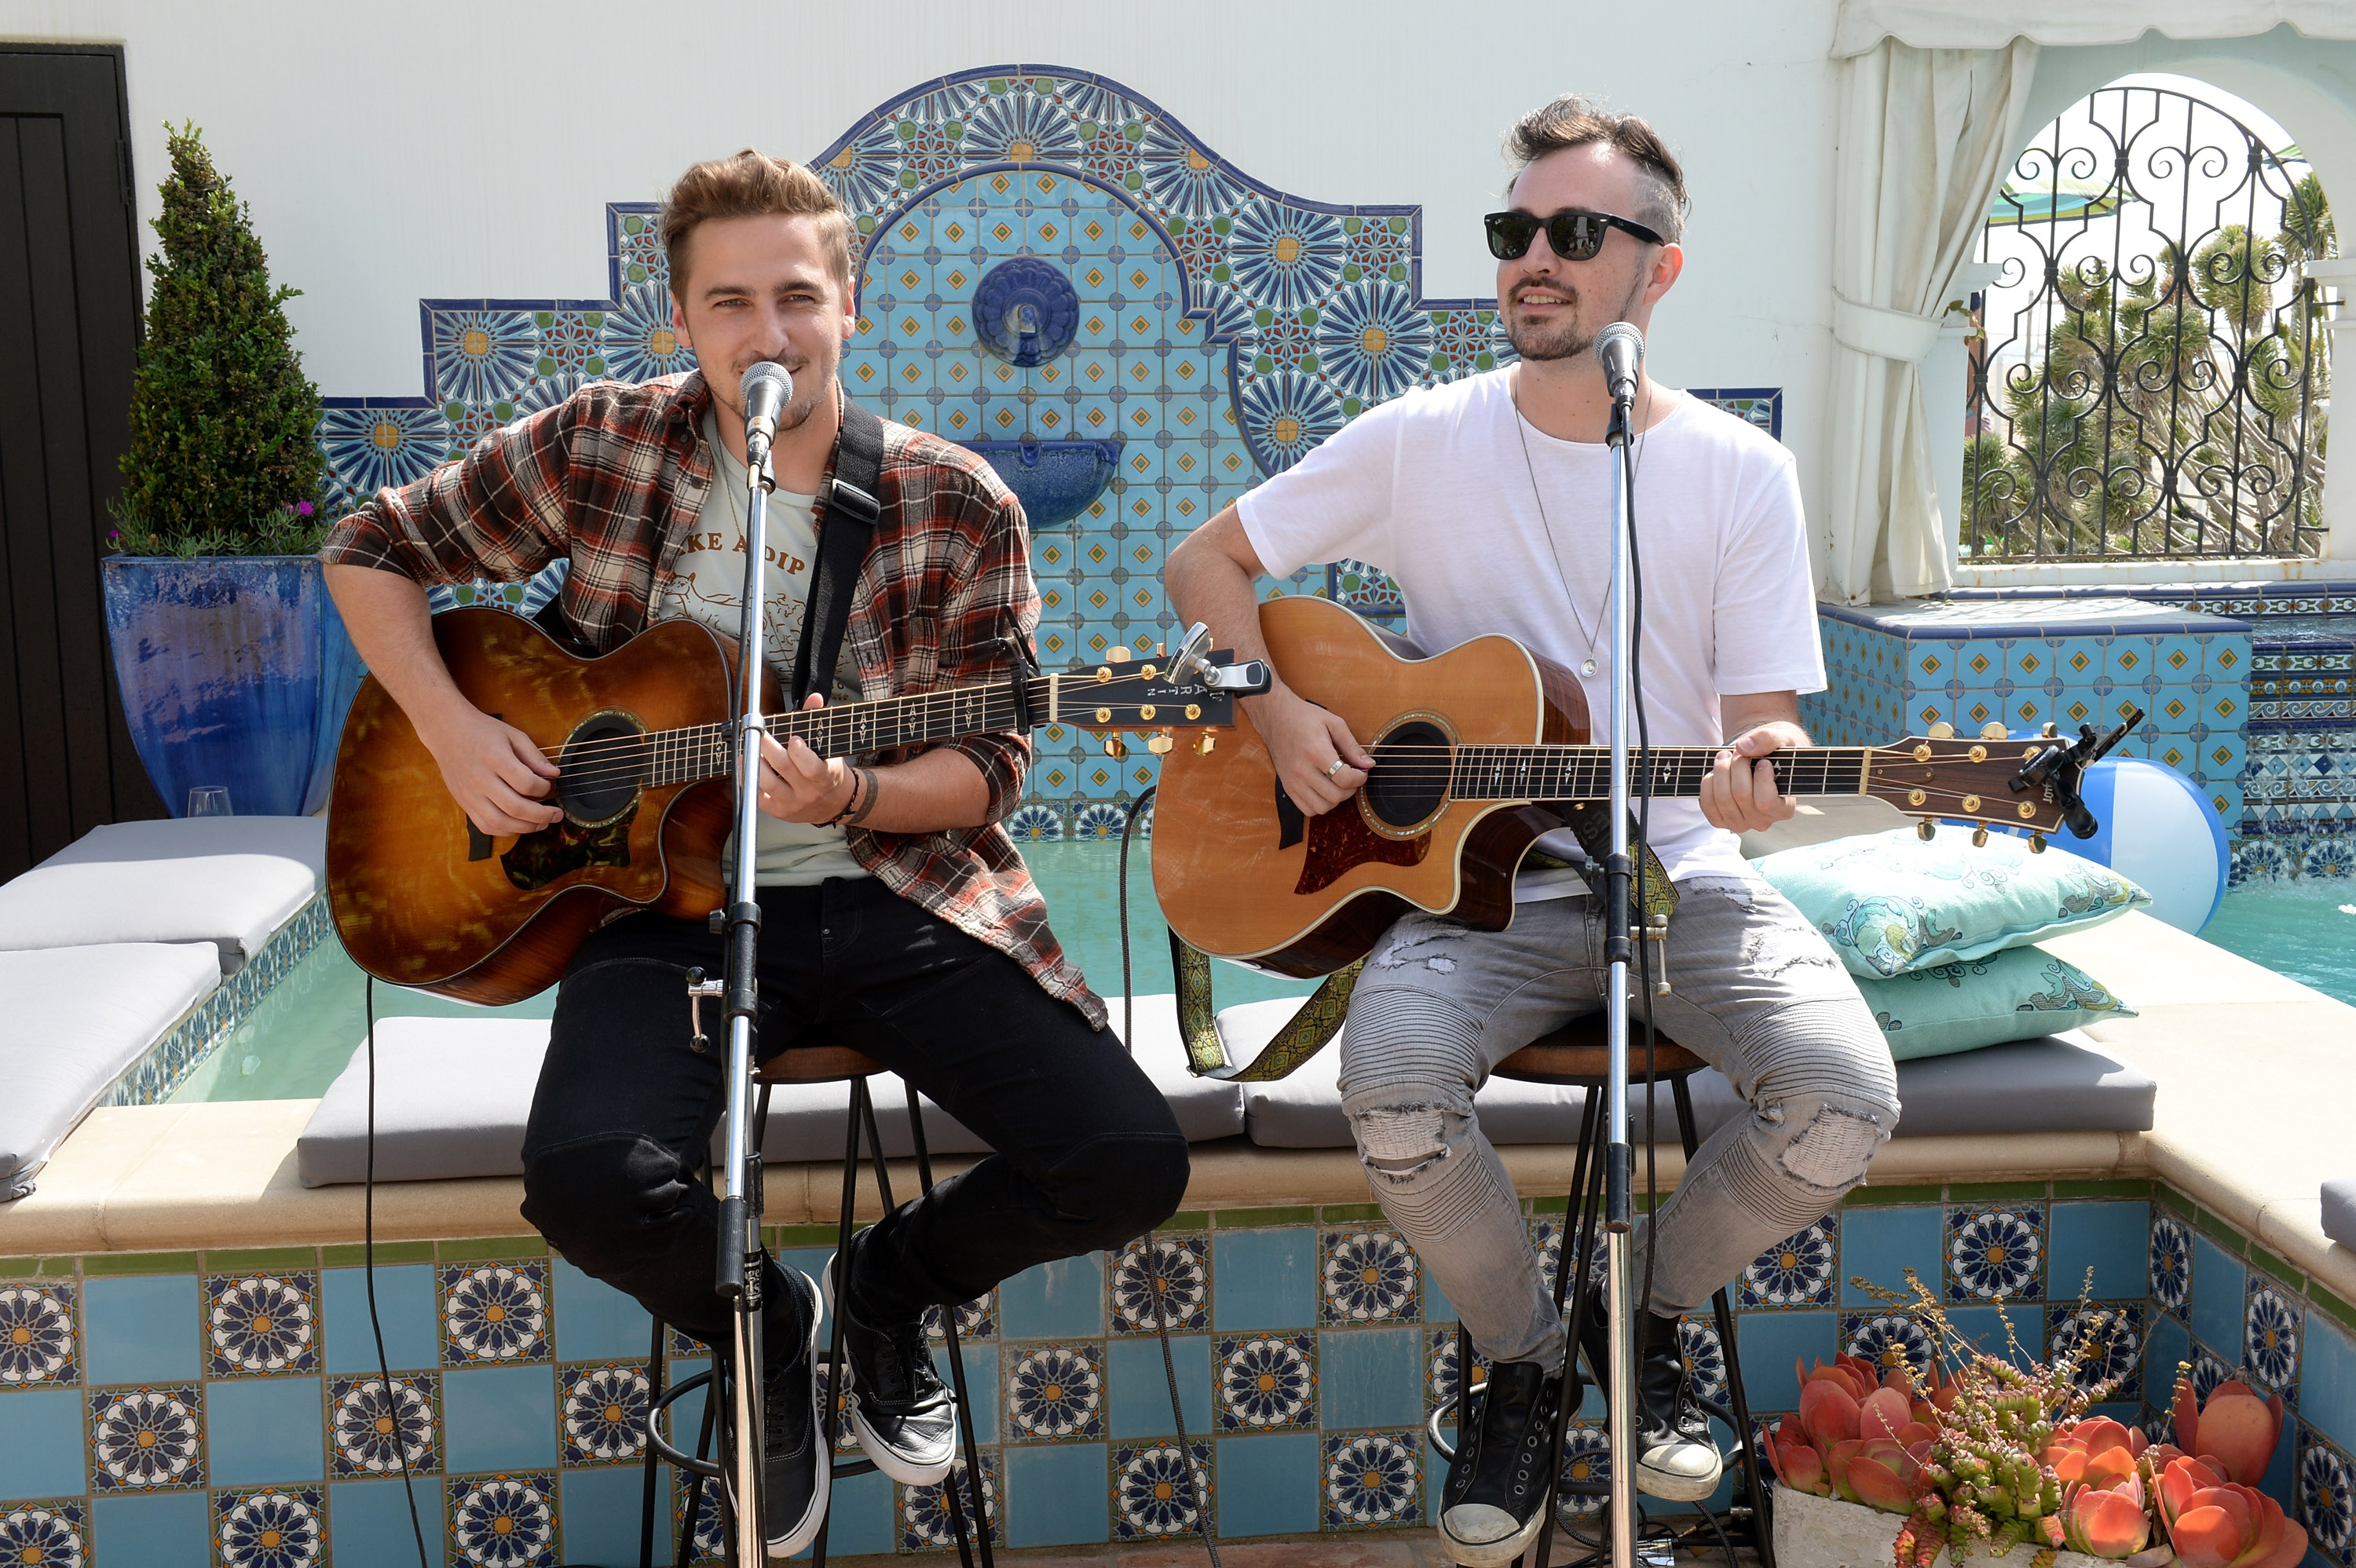 """SANTA MONICA, CA - MAY 14: Musicians Kendall Schmidt (L) and Dustin Belt of musical group 'Heffron Drive' perform at Cost Plus World Market's Santa Monica Beach House Party #Celebrate Outdoors on May 14, 2016 in Santa Monica, California. (Photo by Michael Kovac/Getty Images for Cost Plus World Market)"""